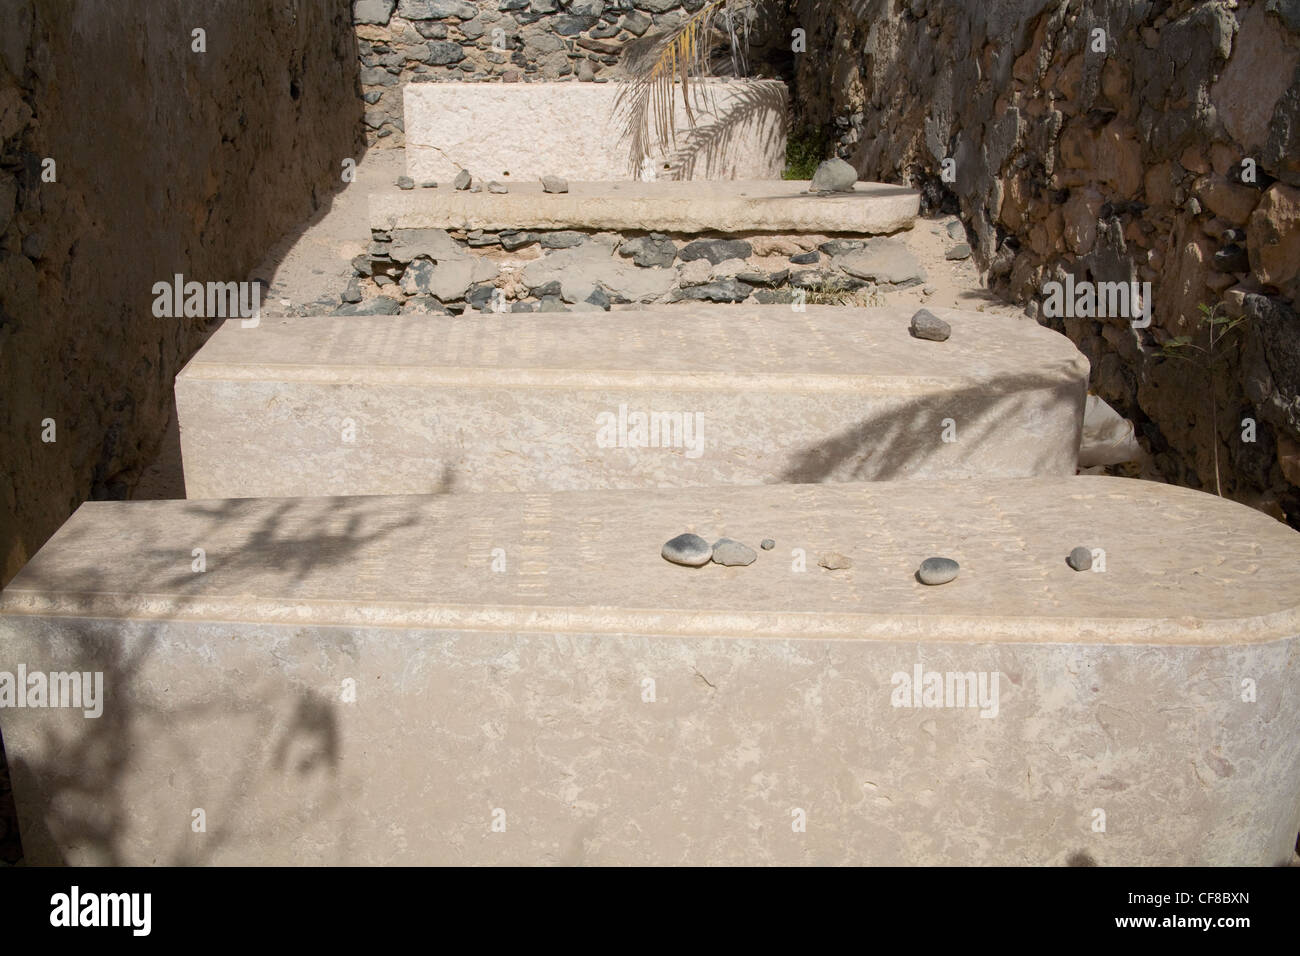 Sal Rei Boa Vista Cape Verde Tombs Ben Oliel Family in small Jewish cemetery stones left as mark of respect by Jewish - Stock Image